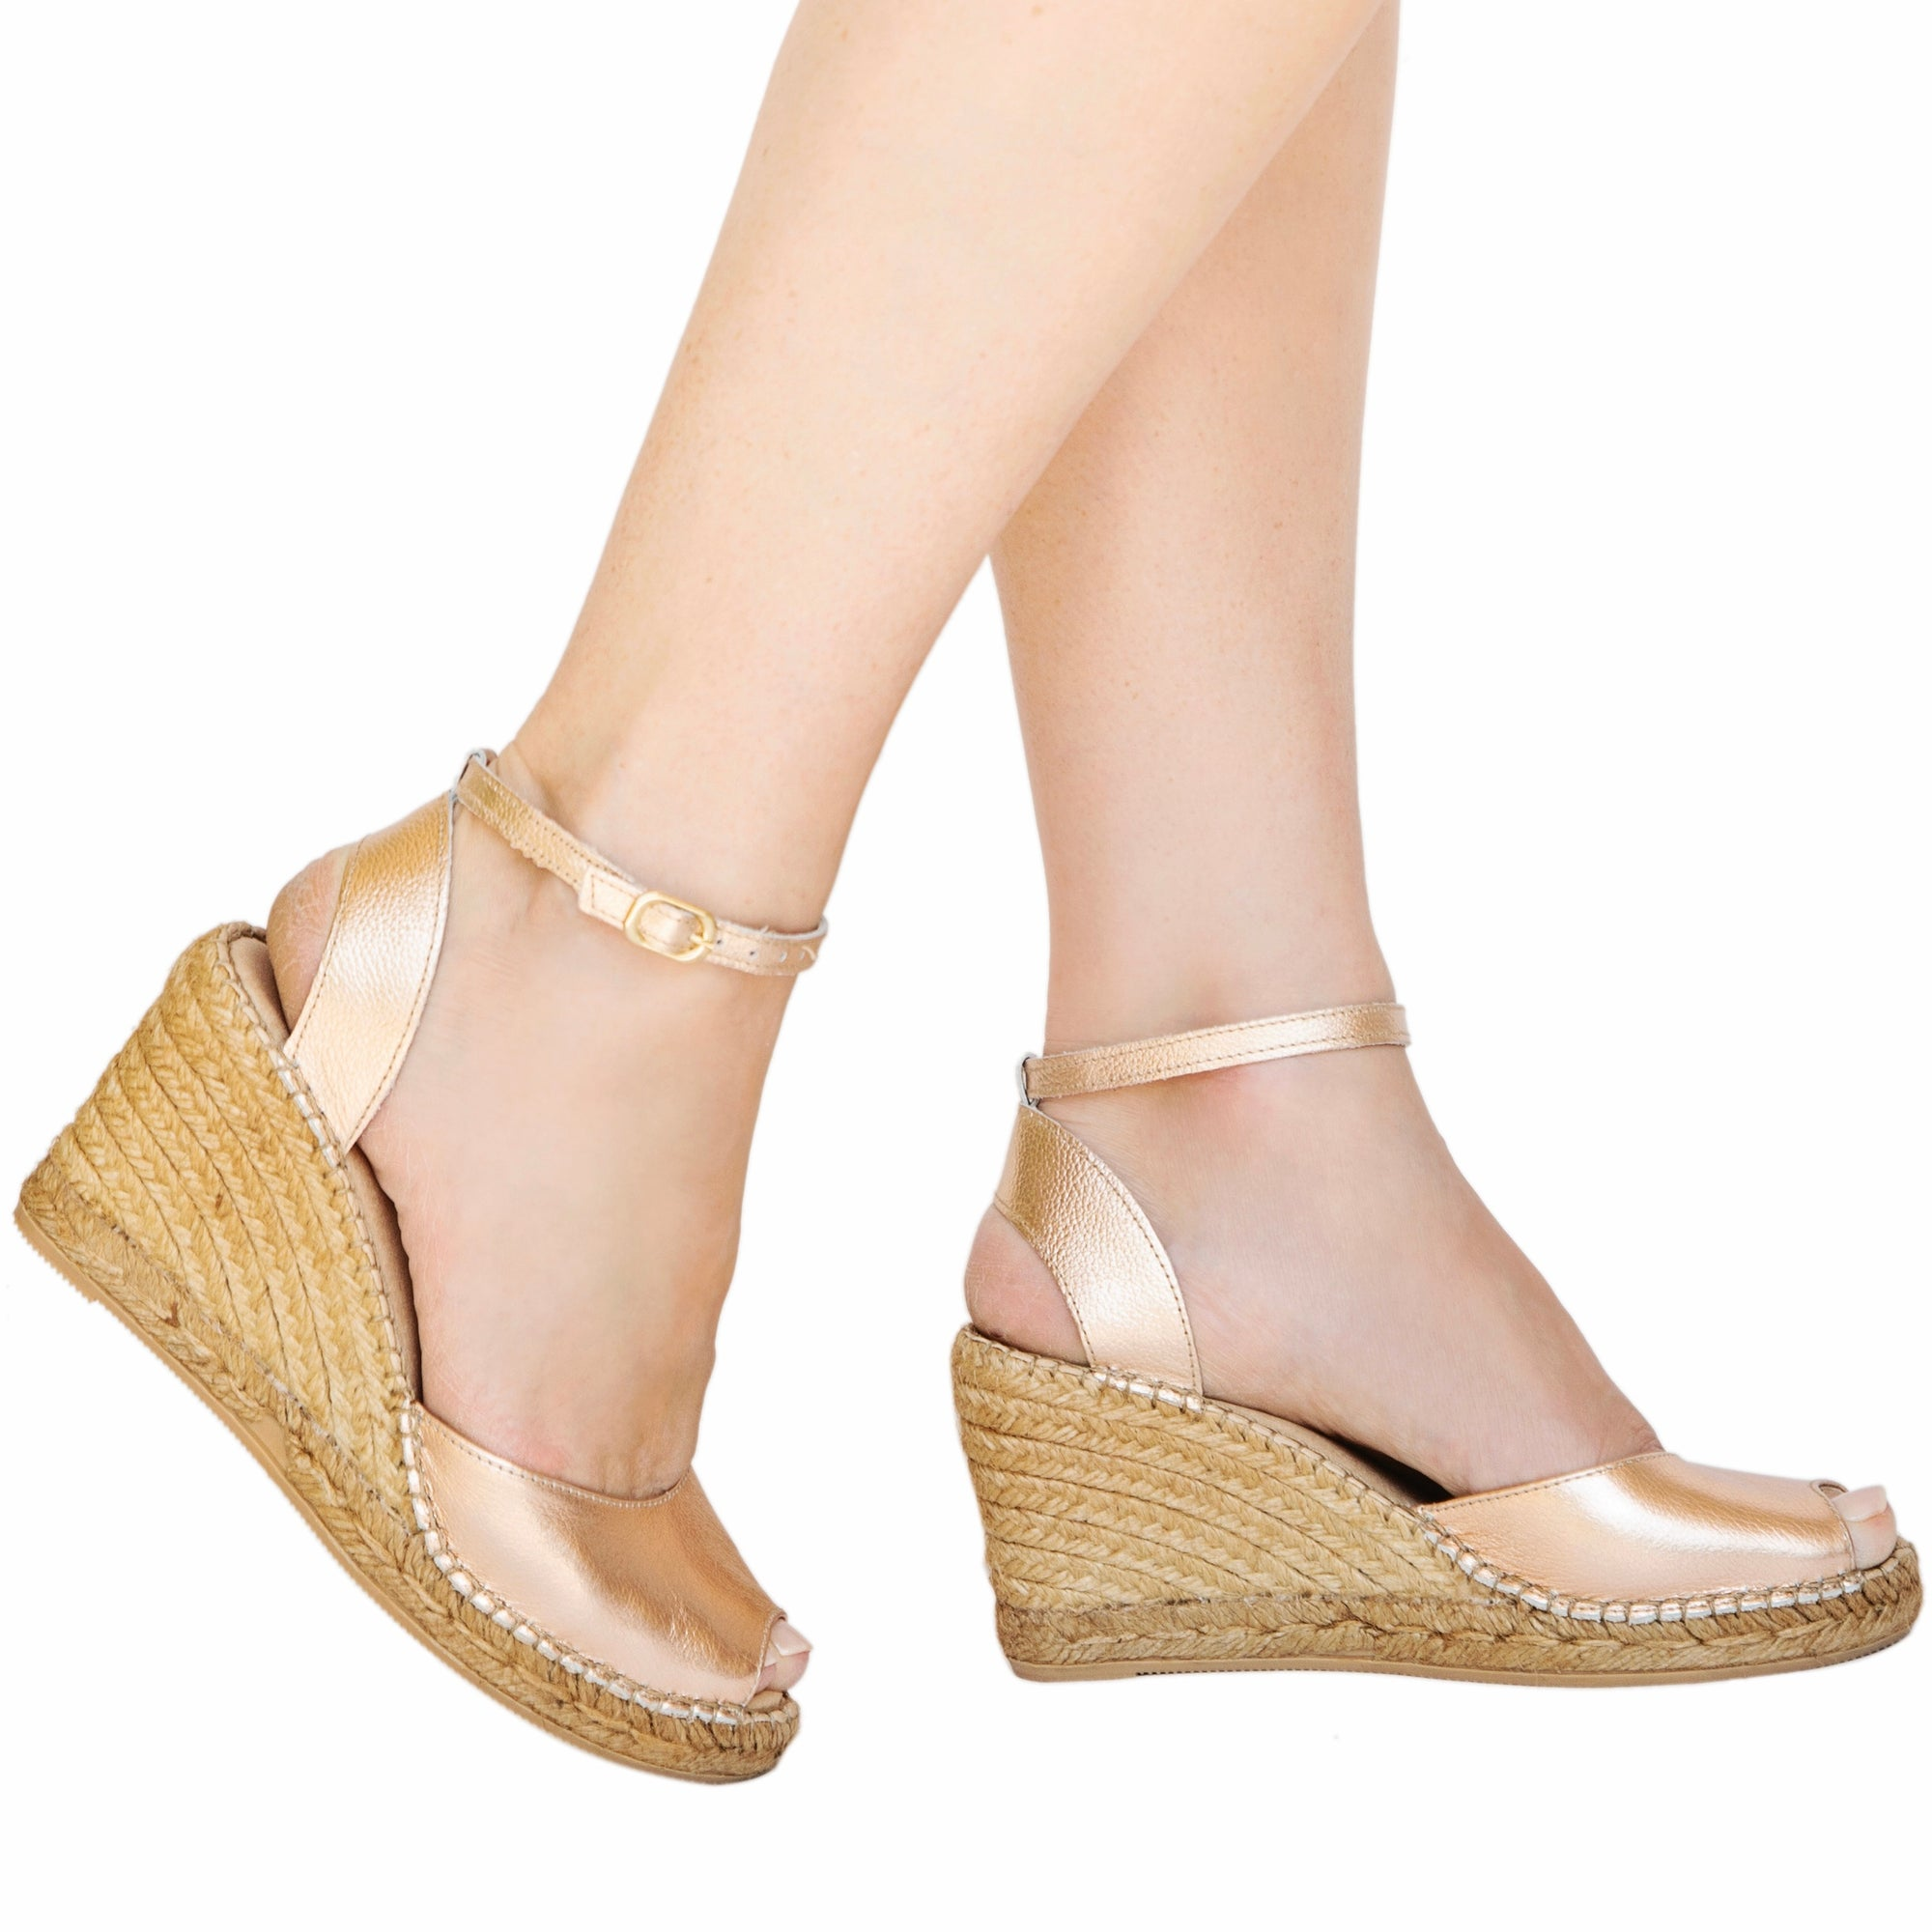 Rose Gold Peep Toe Ankle Wedge